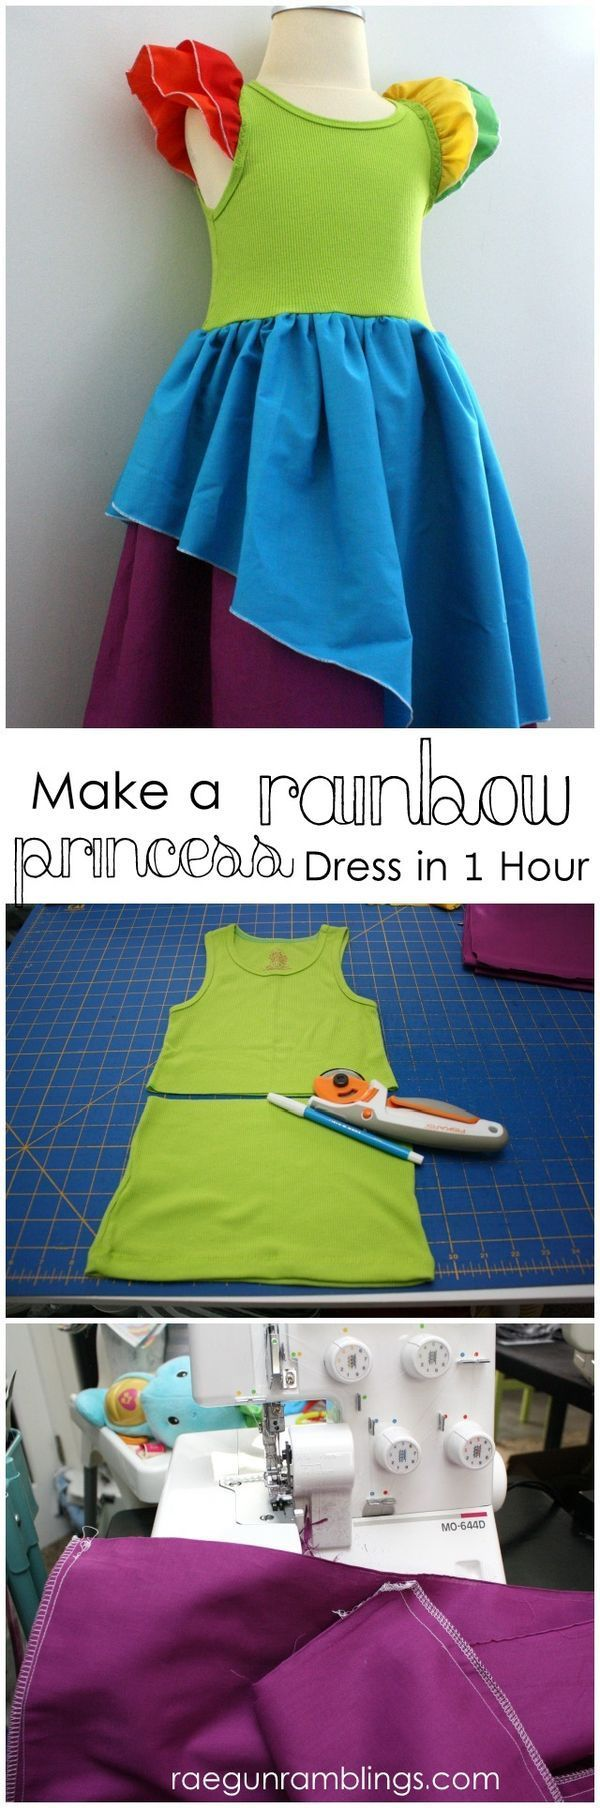 DIY Rainbow Dress Tutorial - This pattern is perfect for any princess party or Halloween costume.